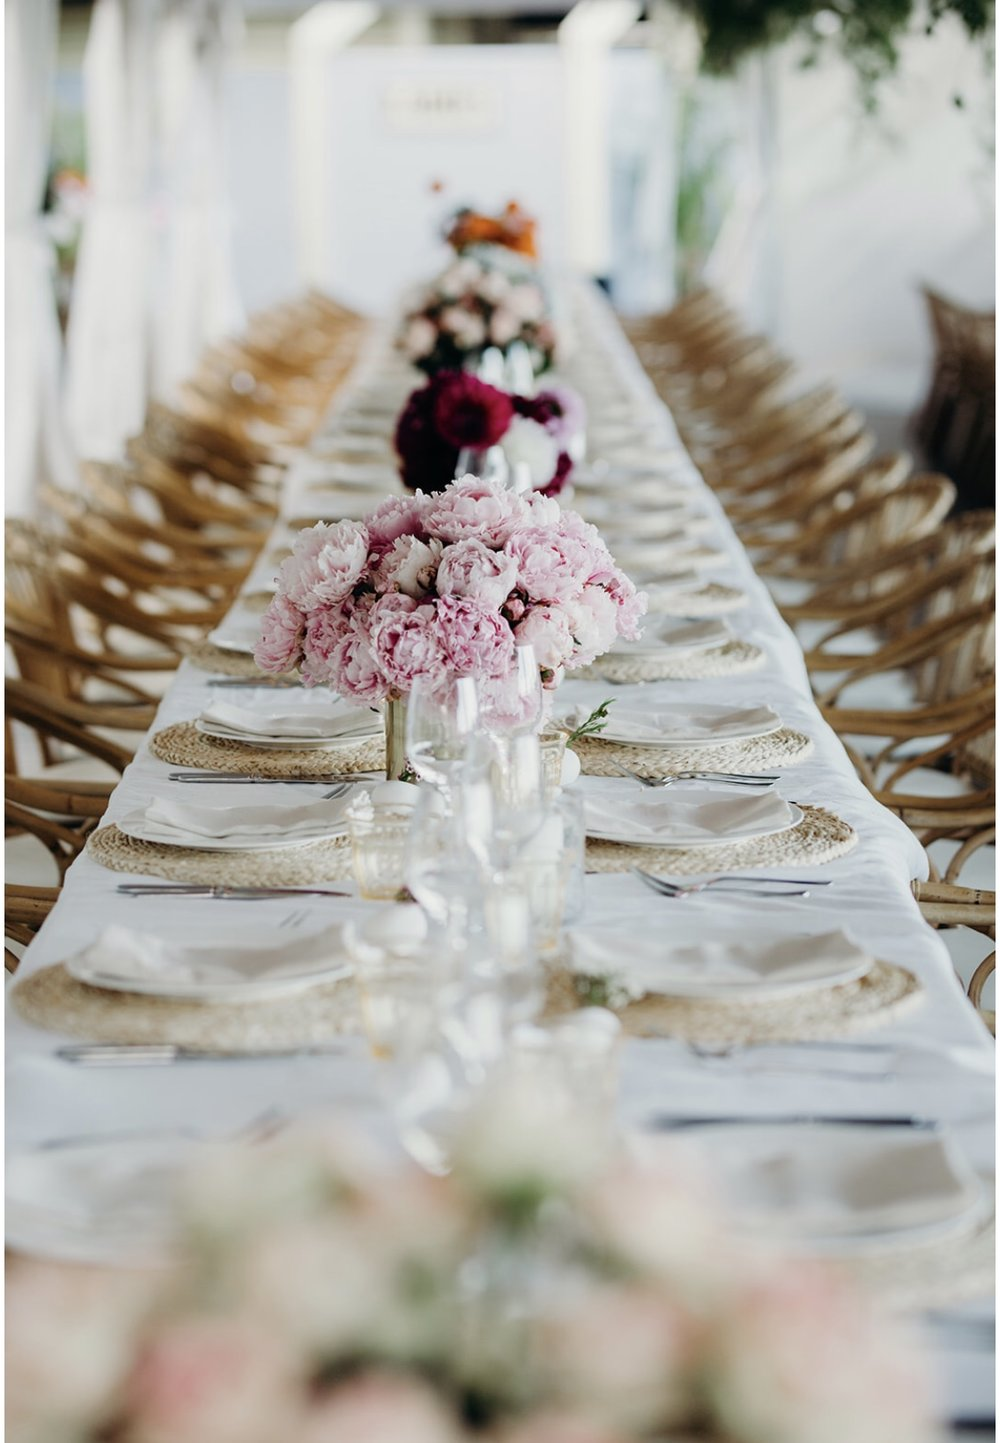 Table settings & bunches of bright florals. Image by Folk & Follow